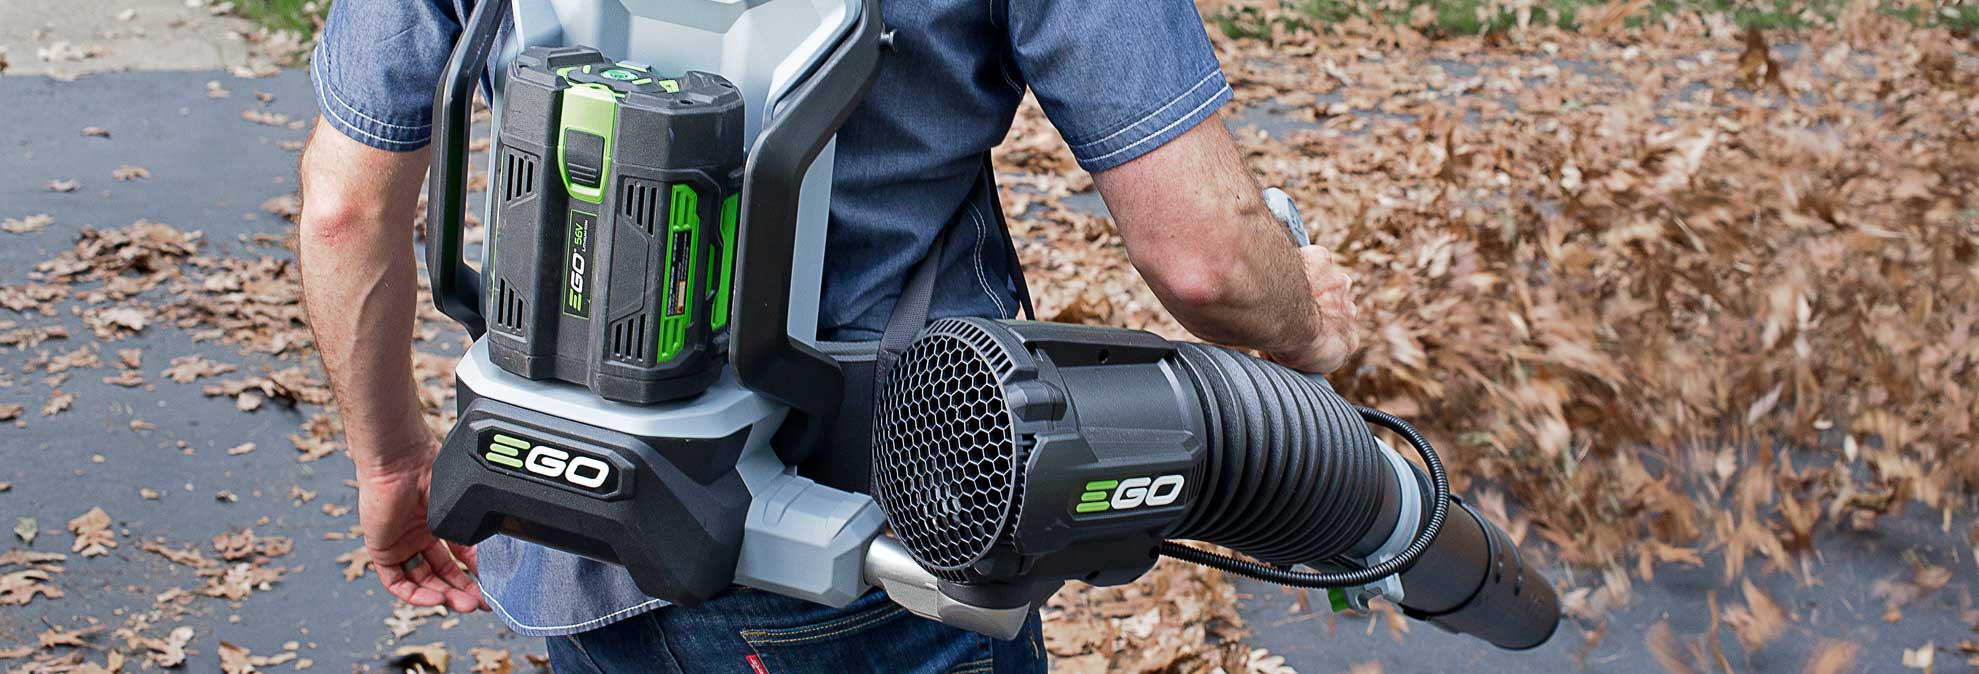 Ego Leaf Blower Blew Away The Electric Competition